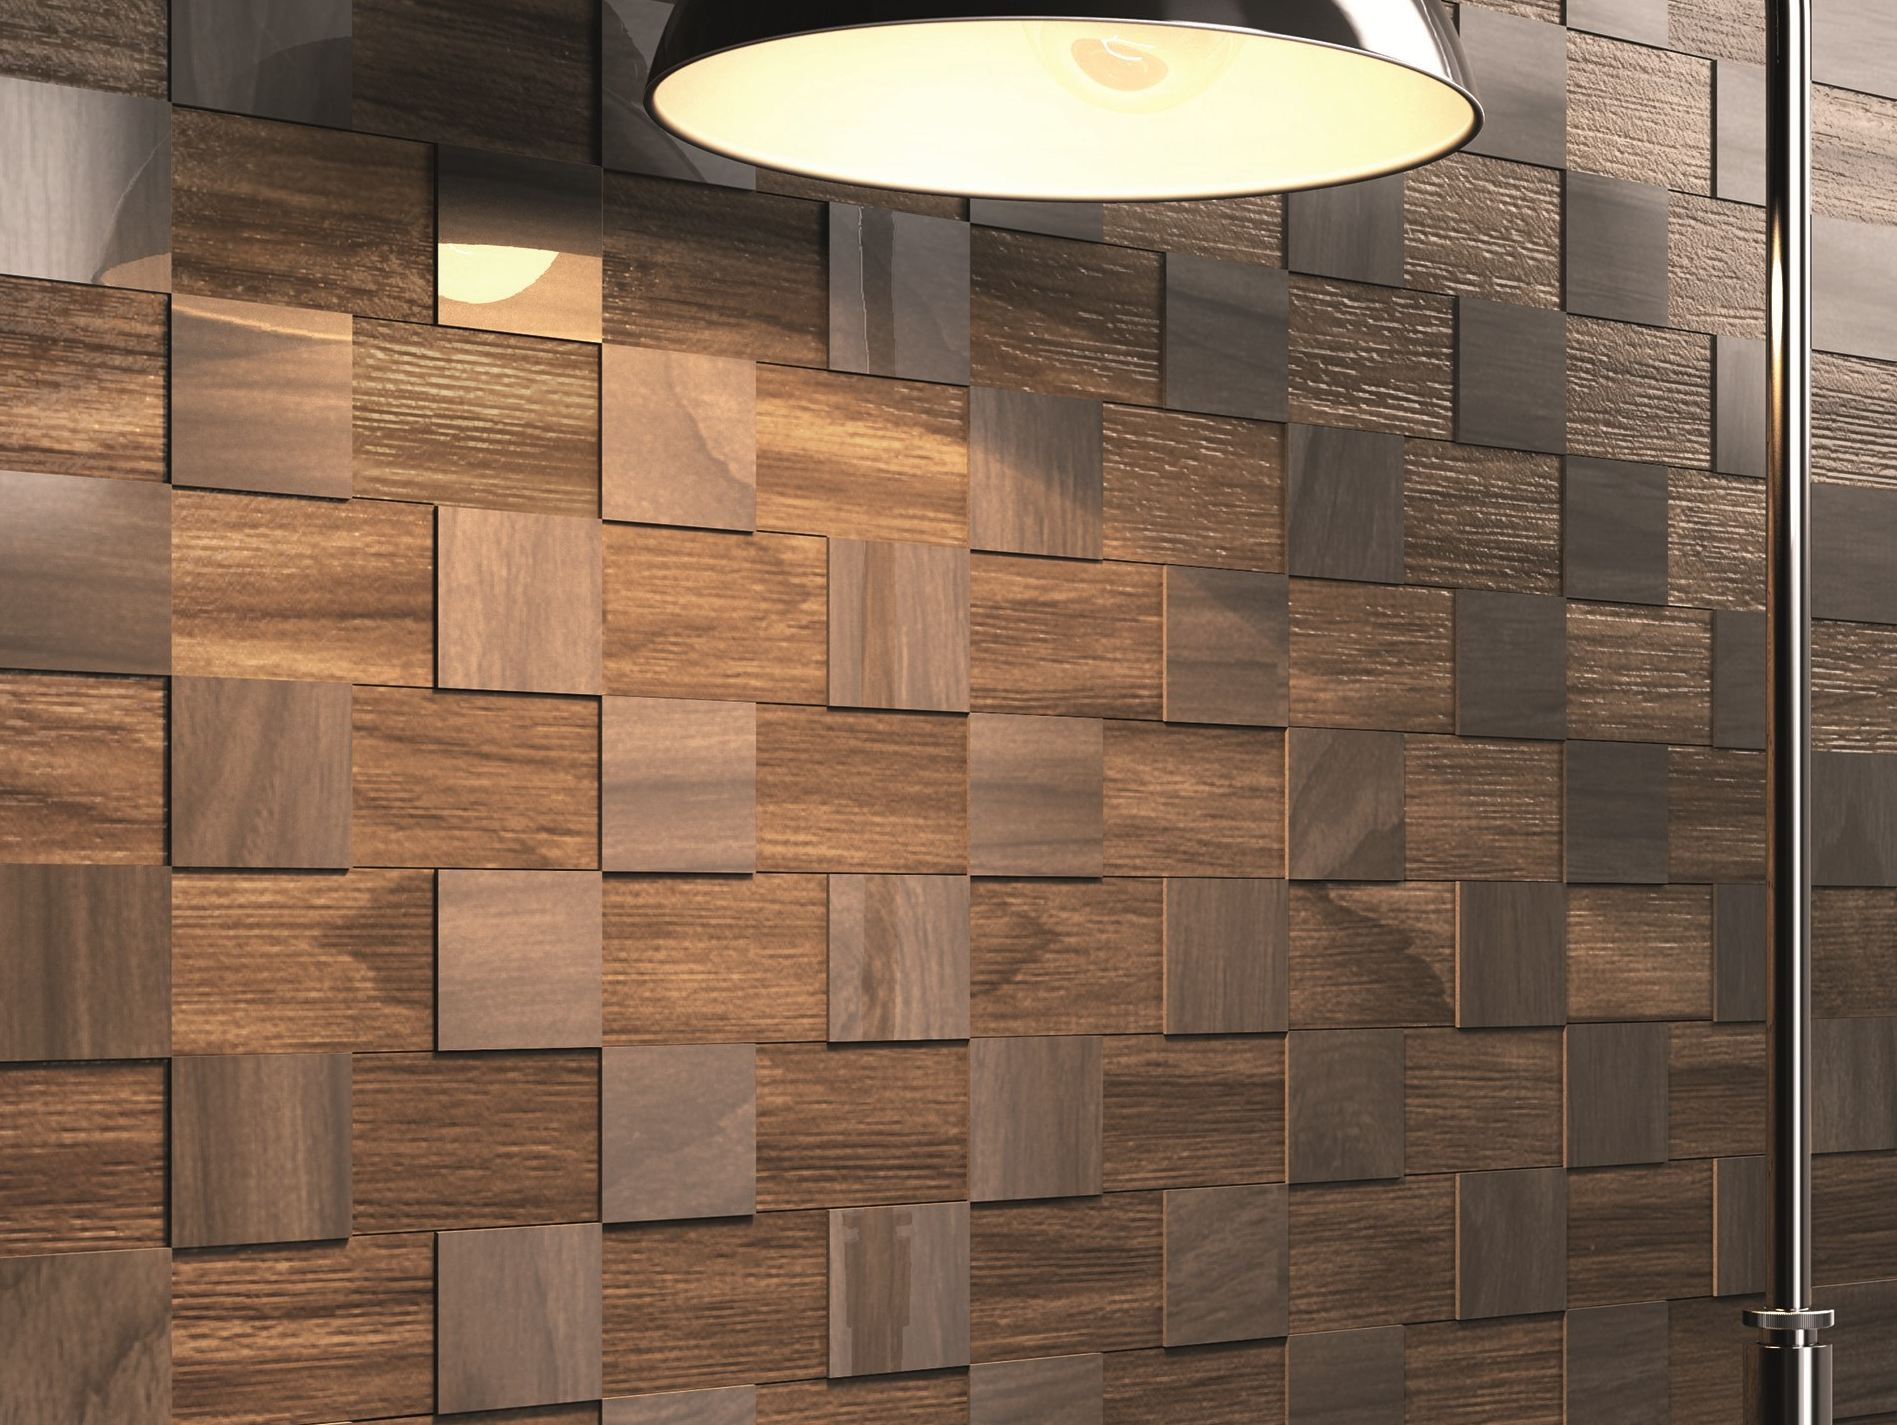 Porcelain Stoneware 3d Wall Mosaic Dutch By Ceramica Sant